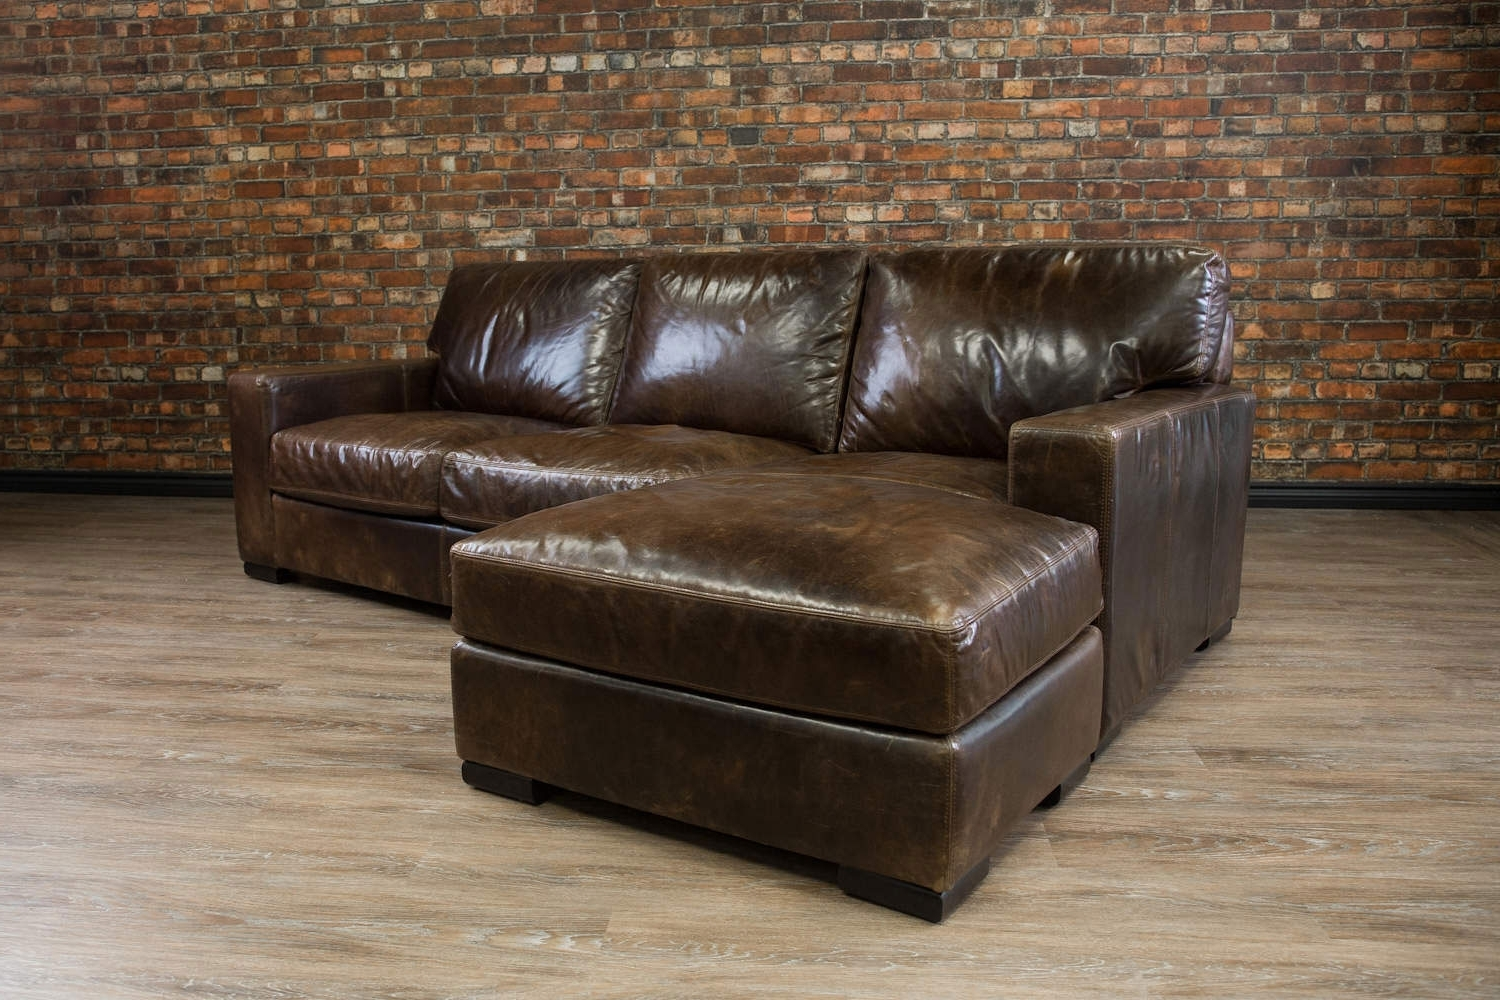 Ottawa Sale Sectional Sofas With Regard To Latest Leather Sofa (View 10 of 15)